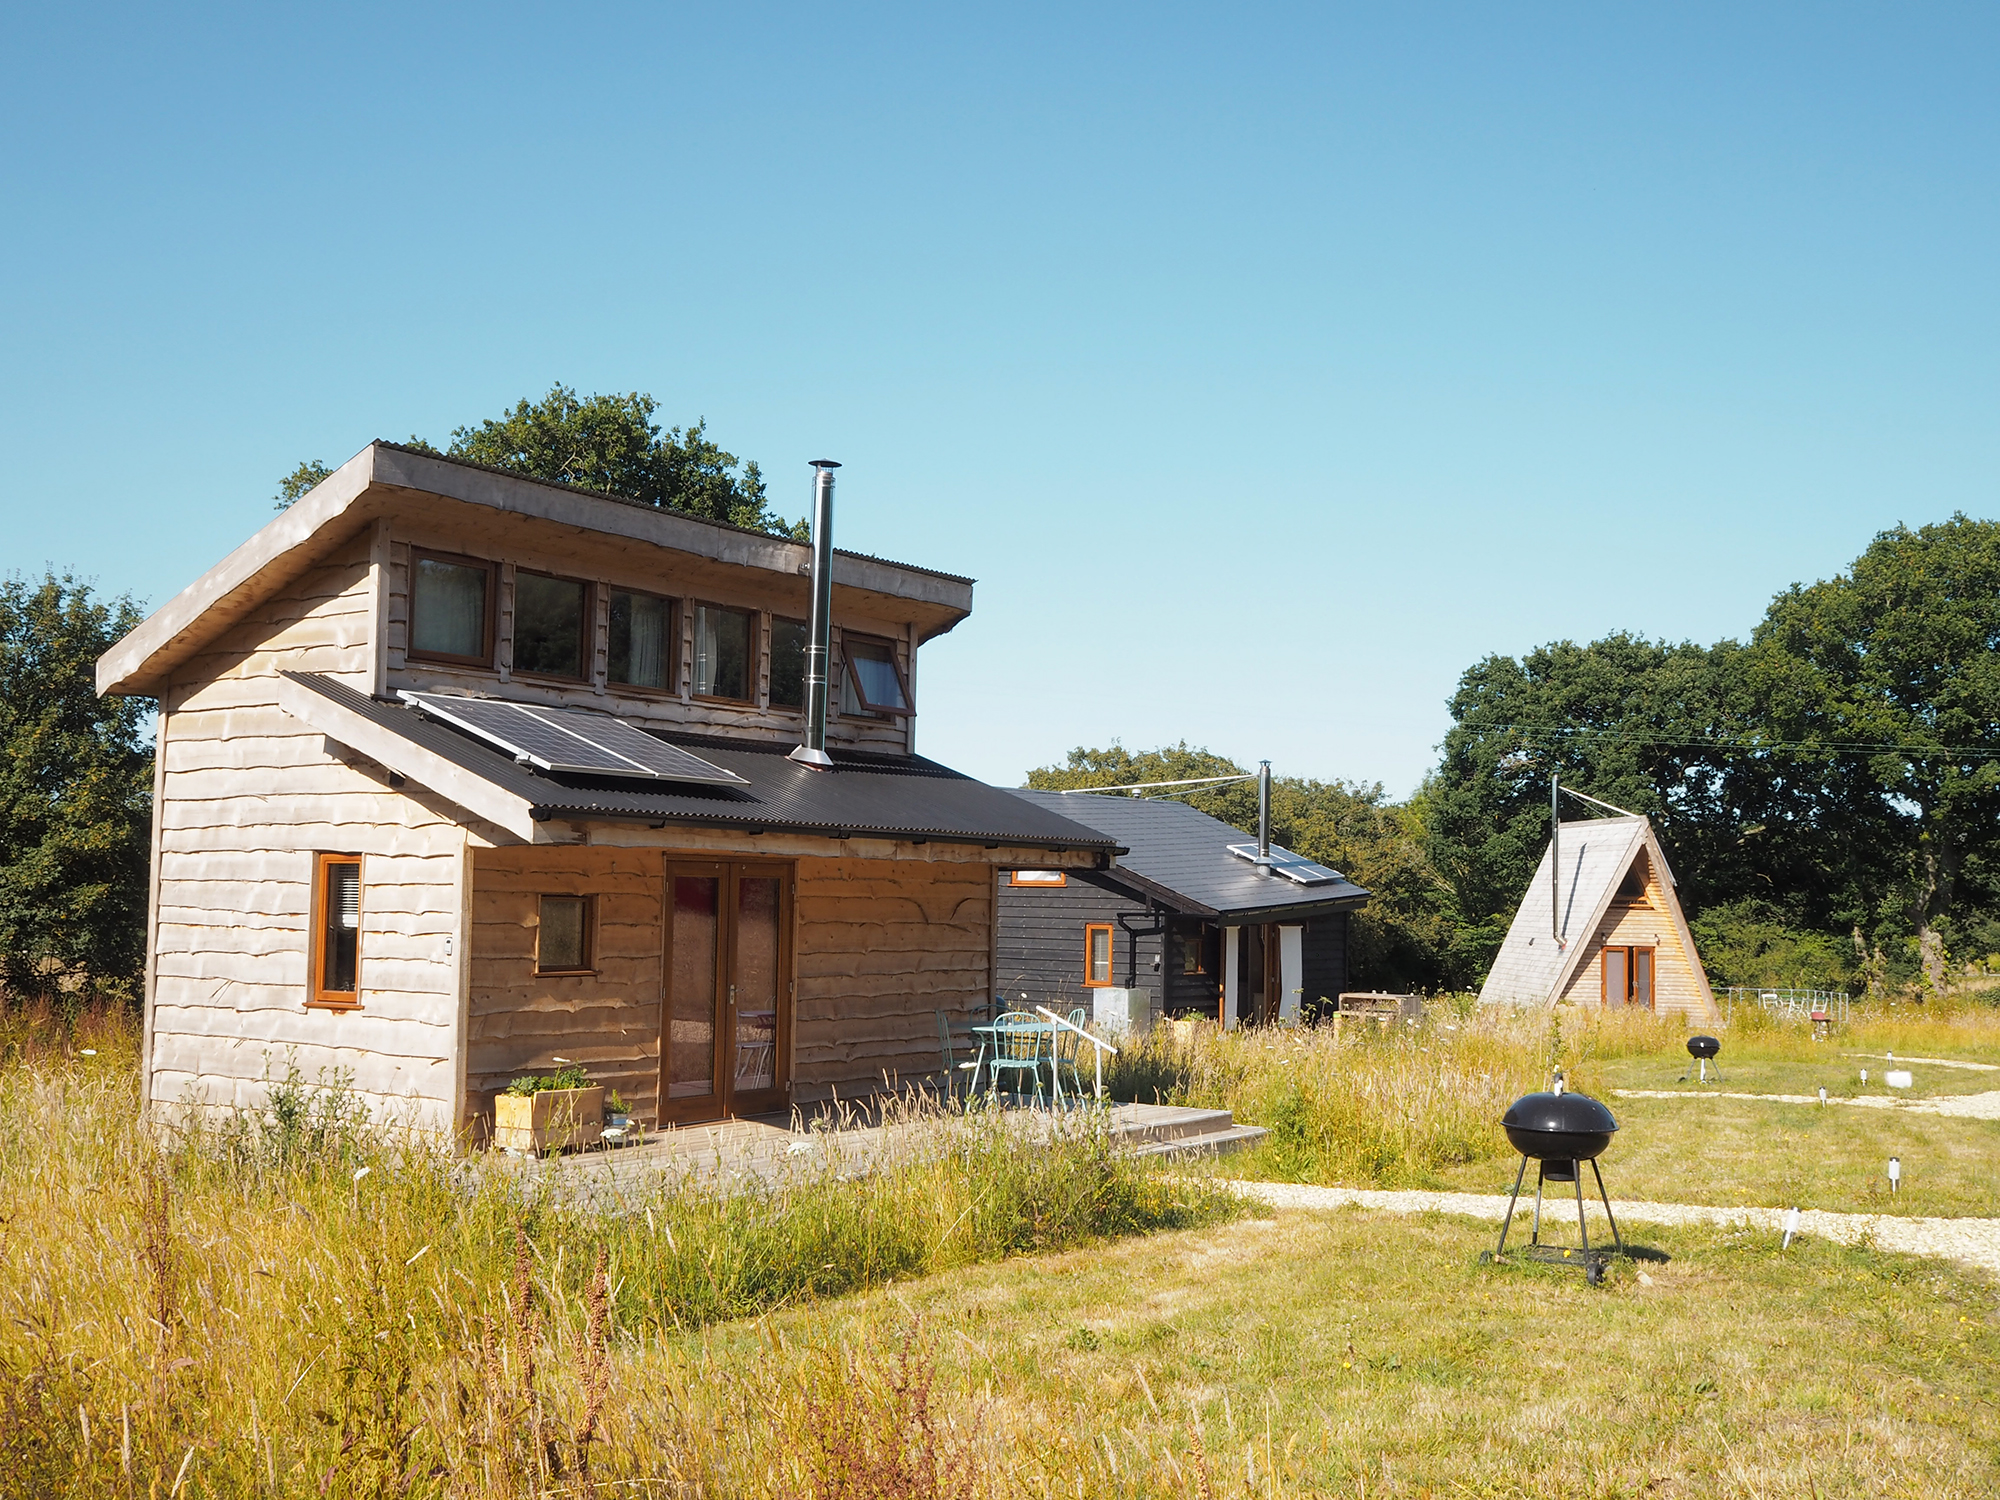 Tiny Homes Holidays - sustainable cabins on the Isle of Wight